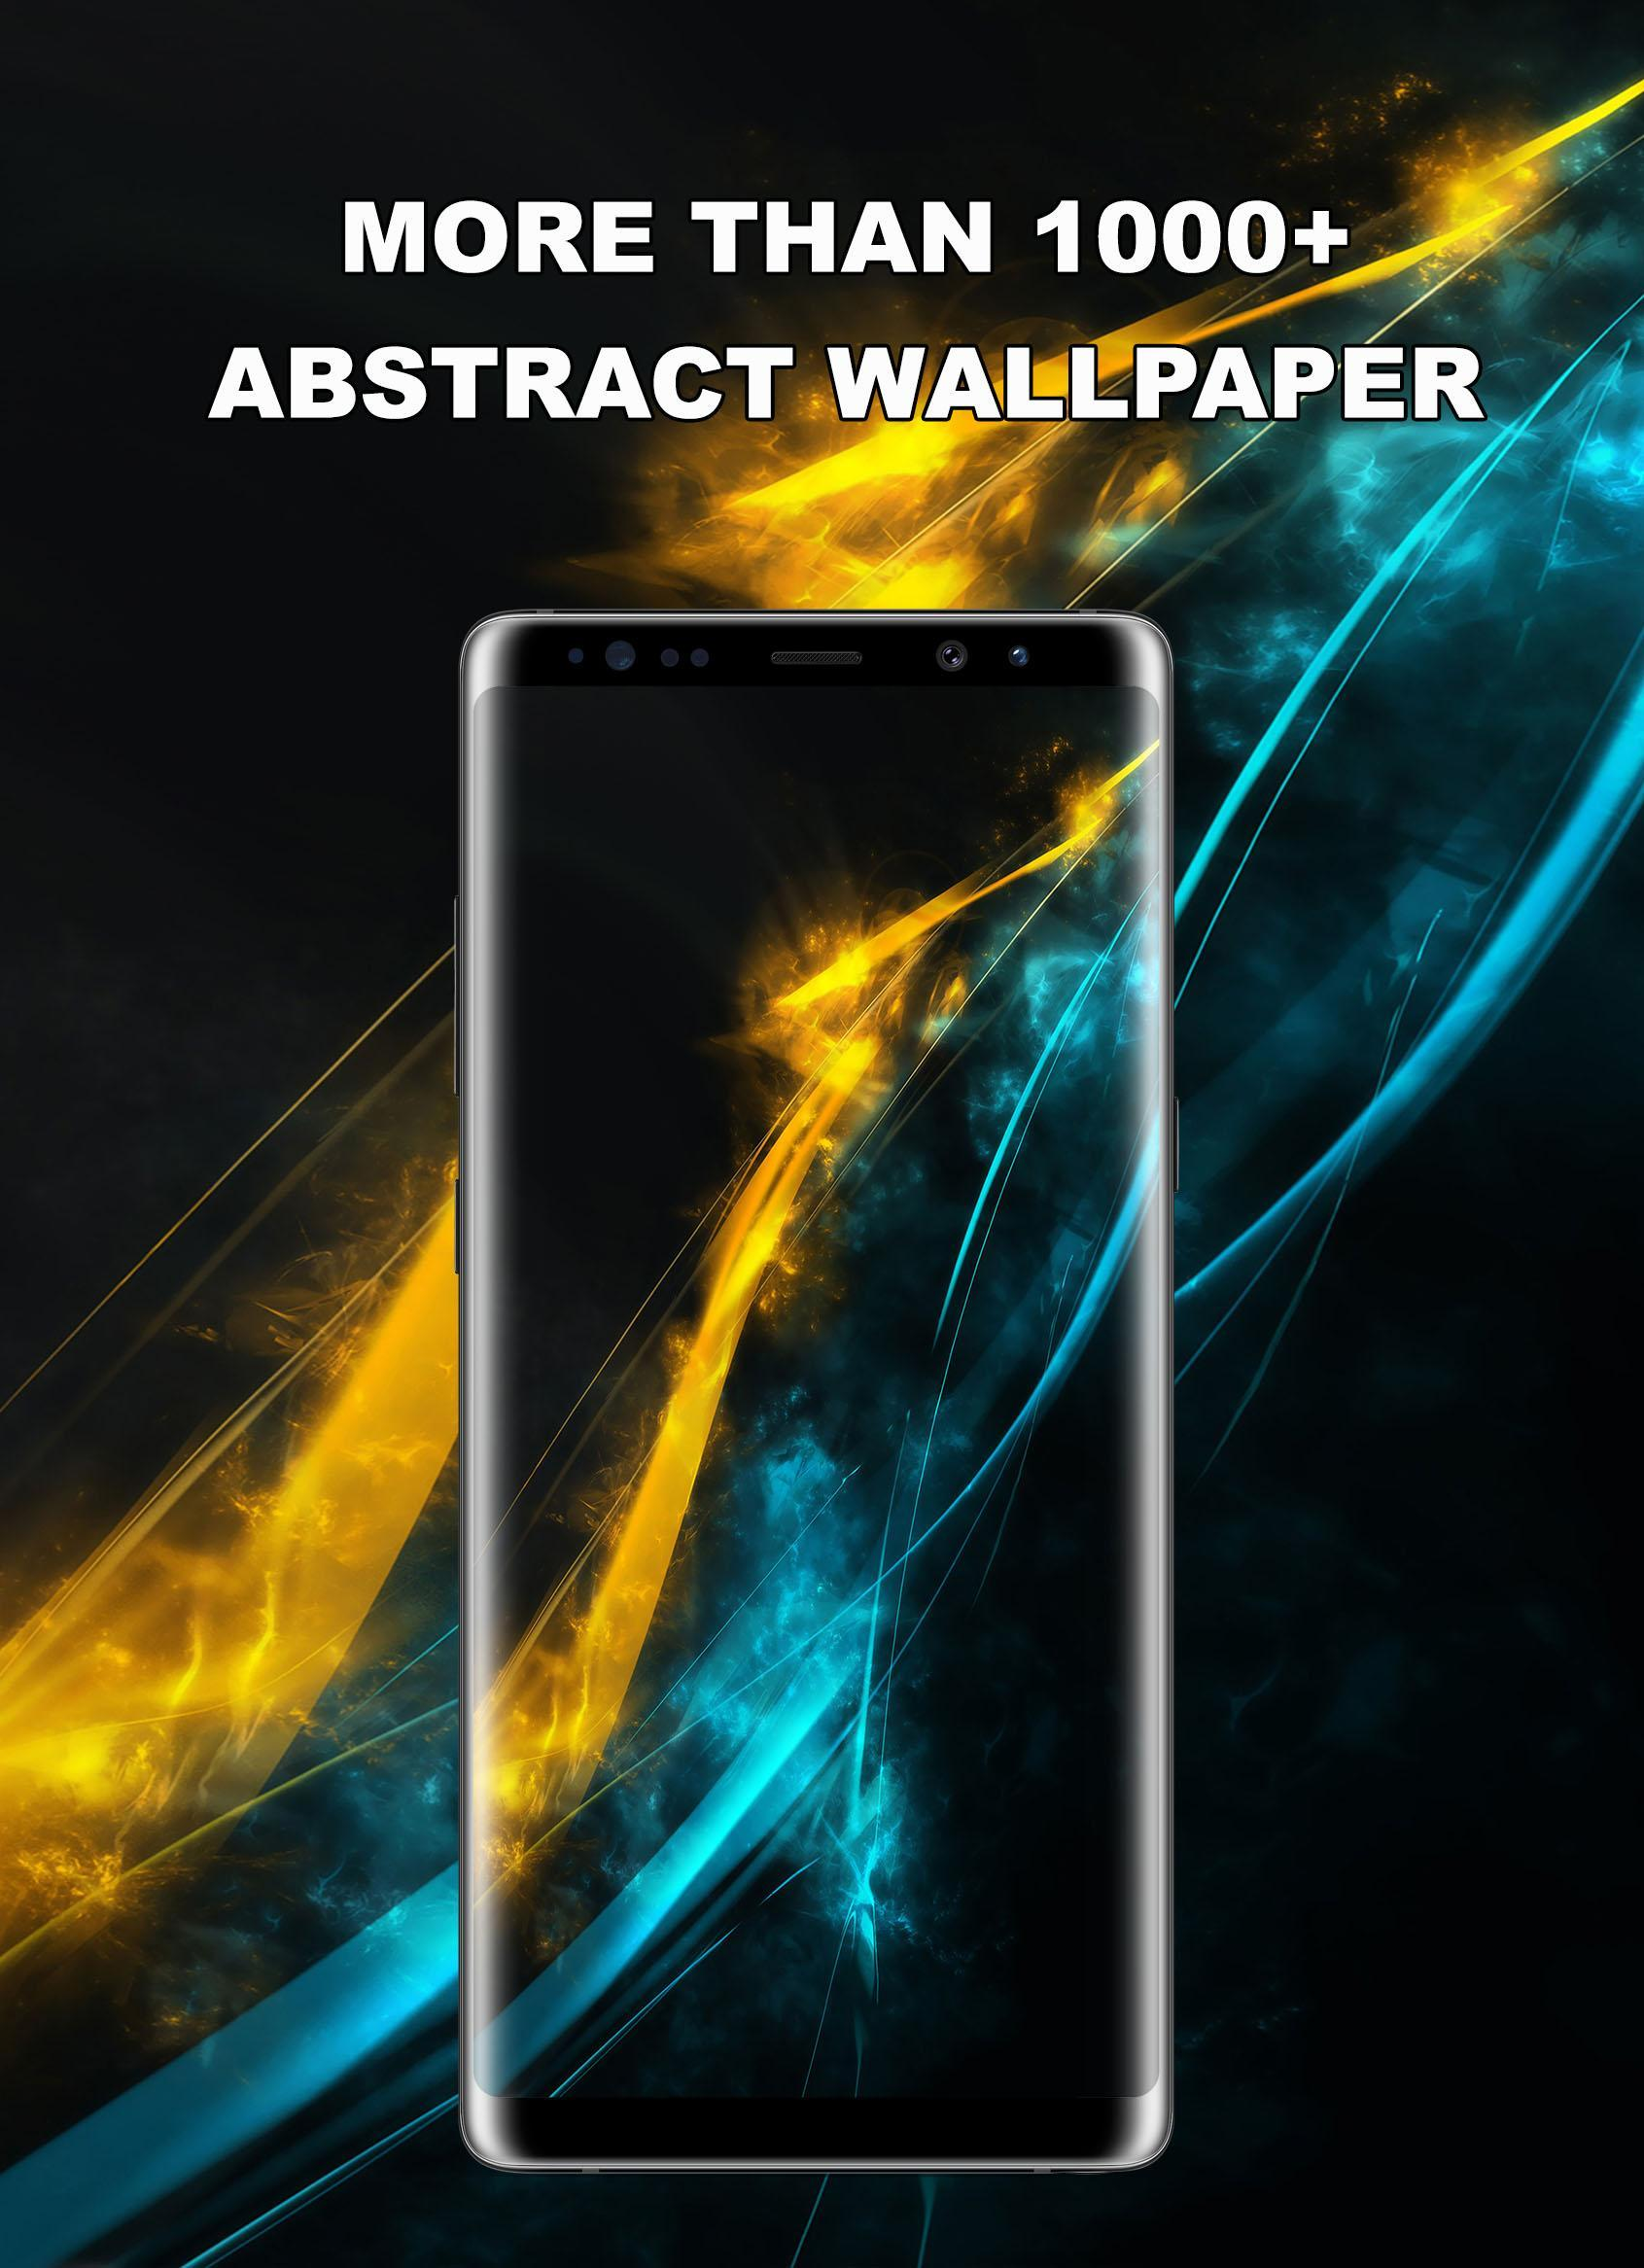 1000 4k Abstract Wallpapers 2019 Hd Wallpapers For Android